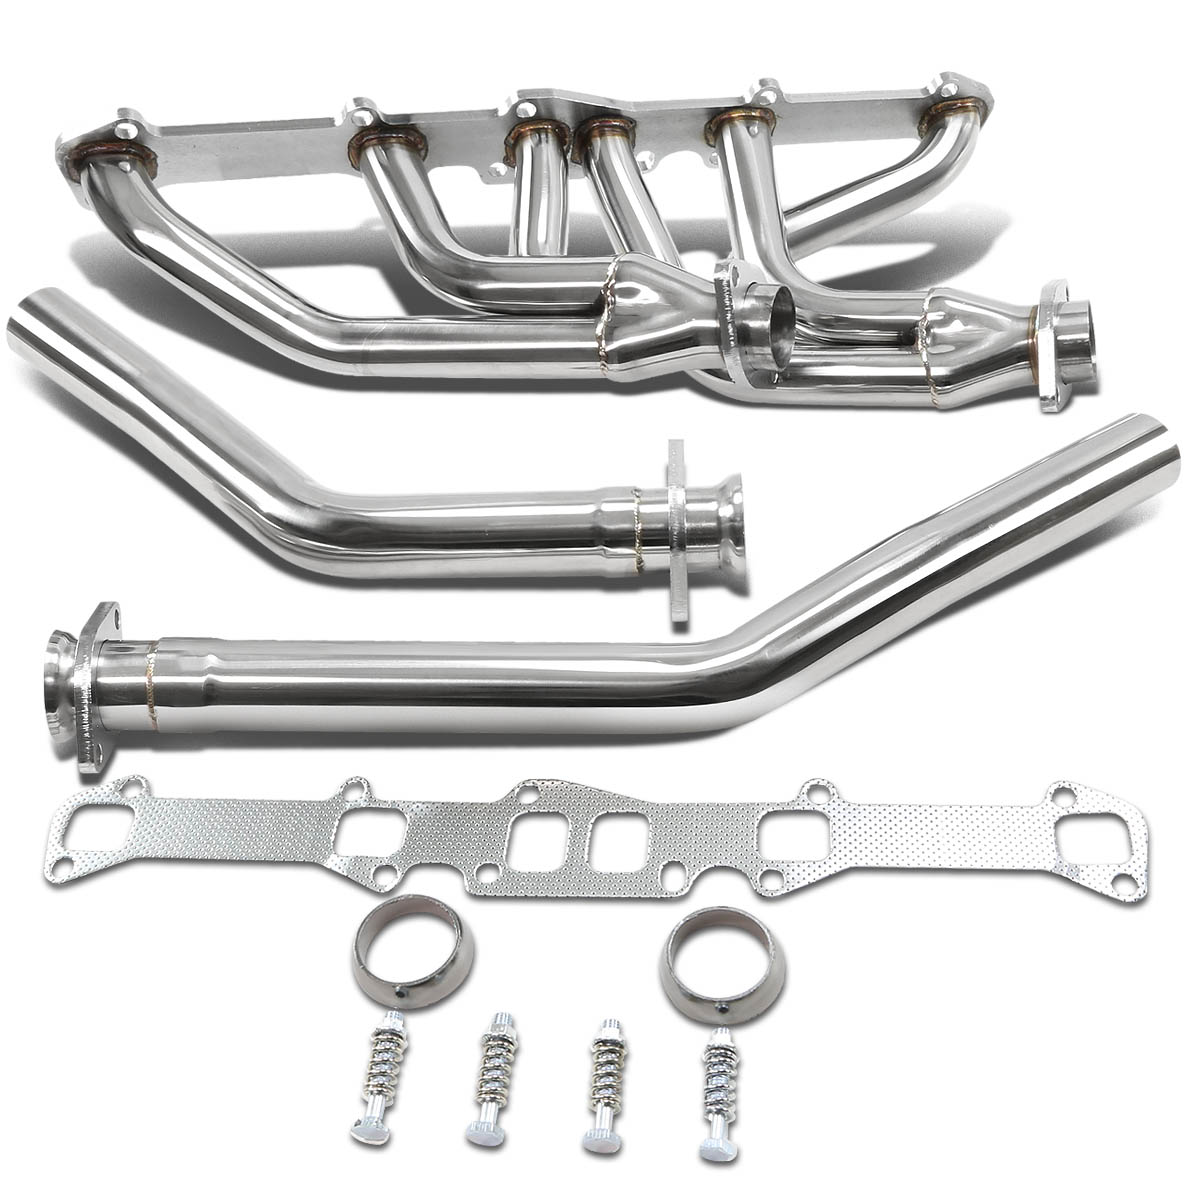 For Ford/Mercury I6 6-2-1 Design Stainless Steel Exhaust Header Kit (Polished Chrome) 144/170/0/240/250 CID